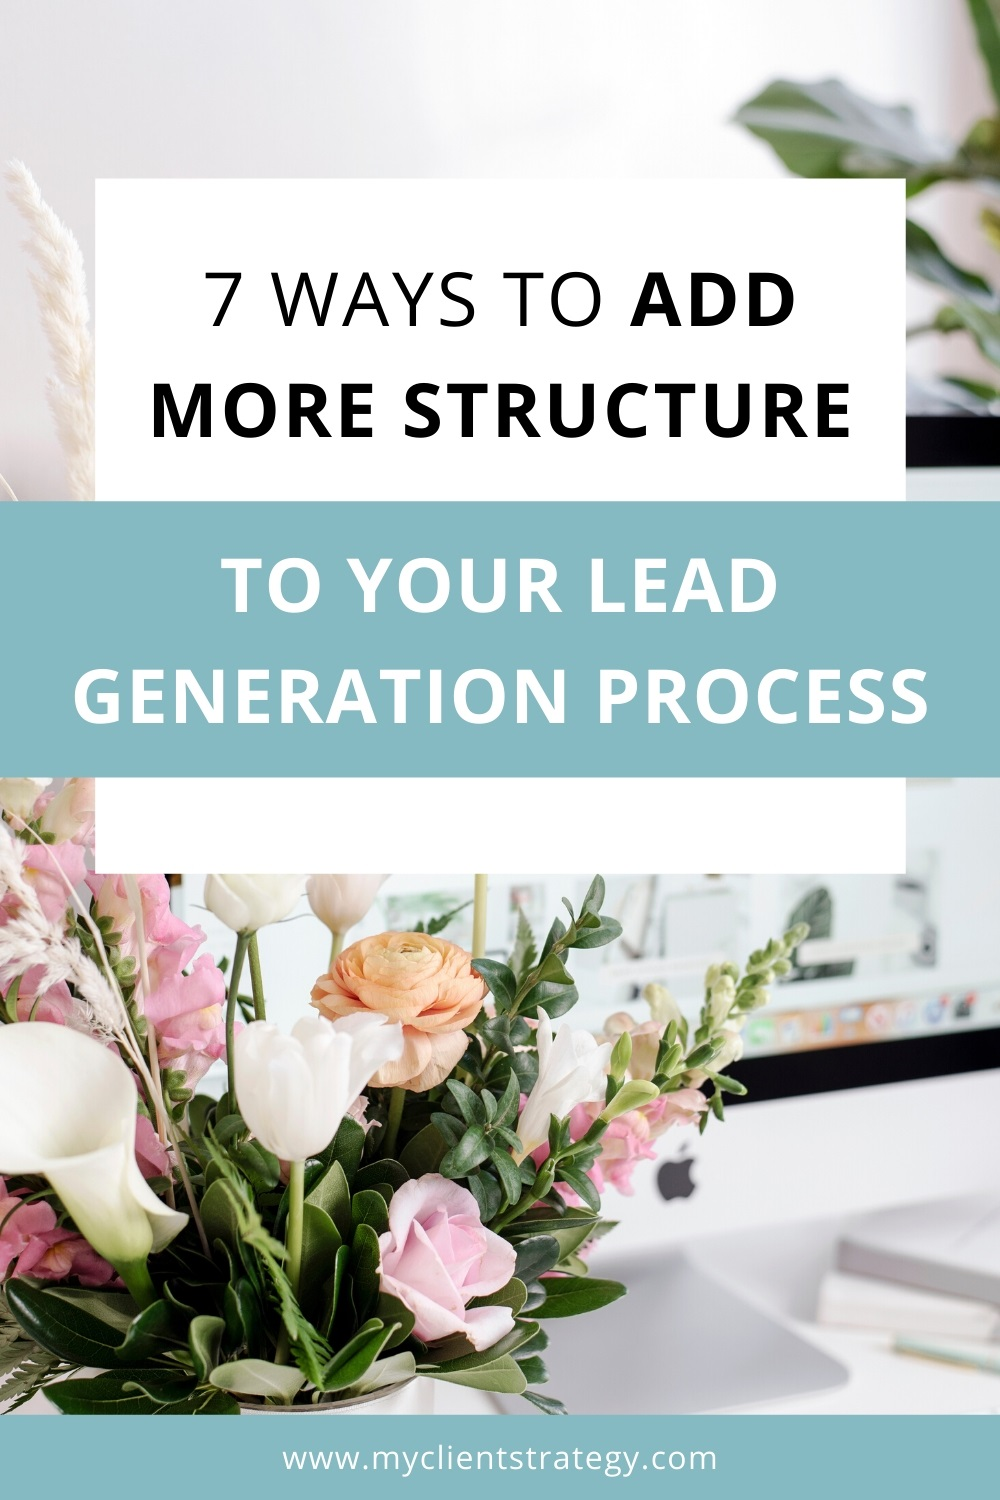 7 Ways to add more structure to your lead generation process